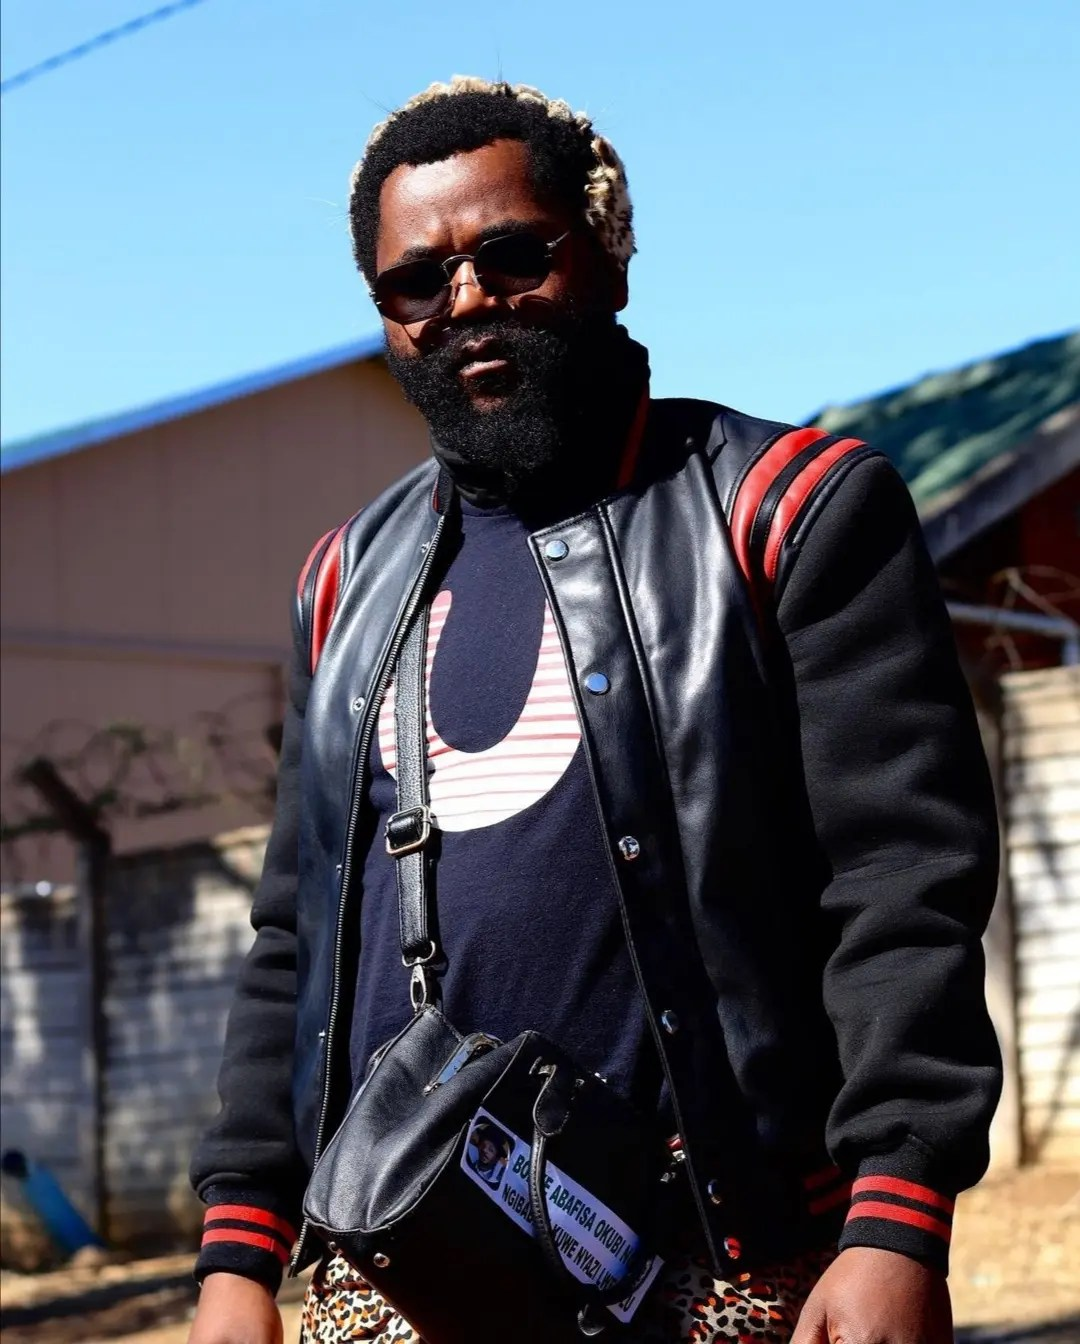 Sjava speaks about moving home